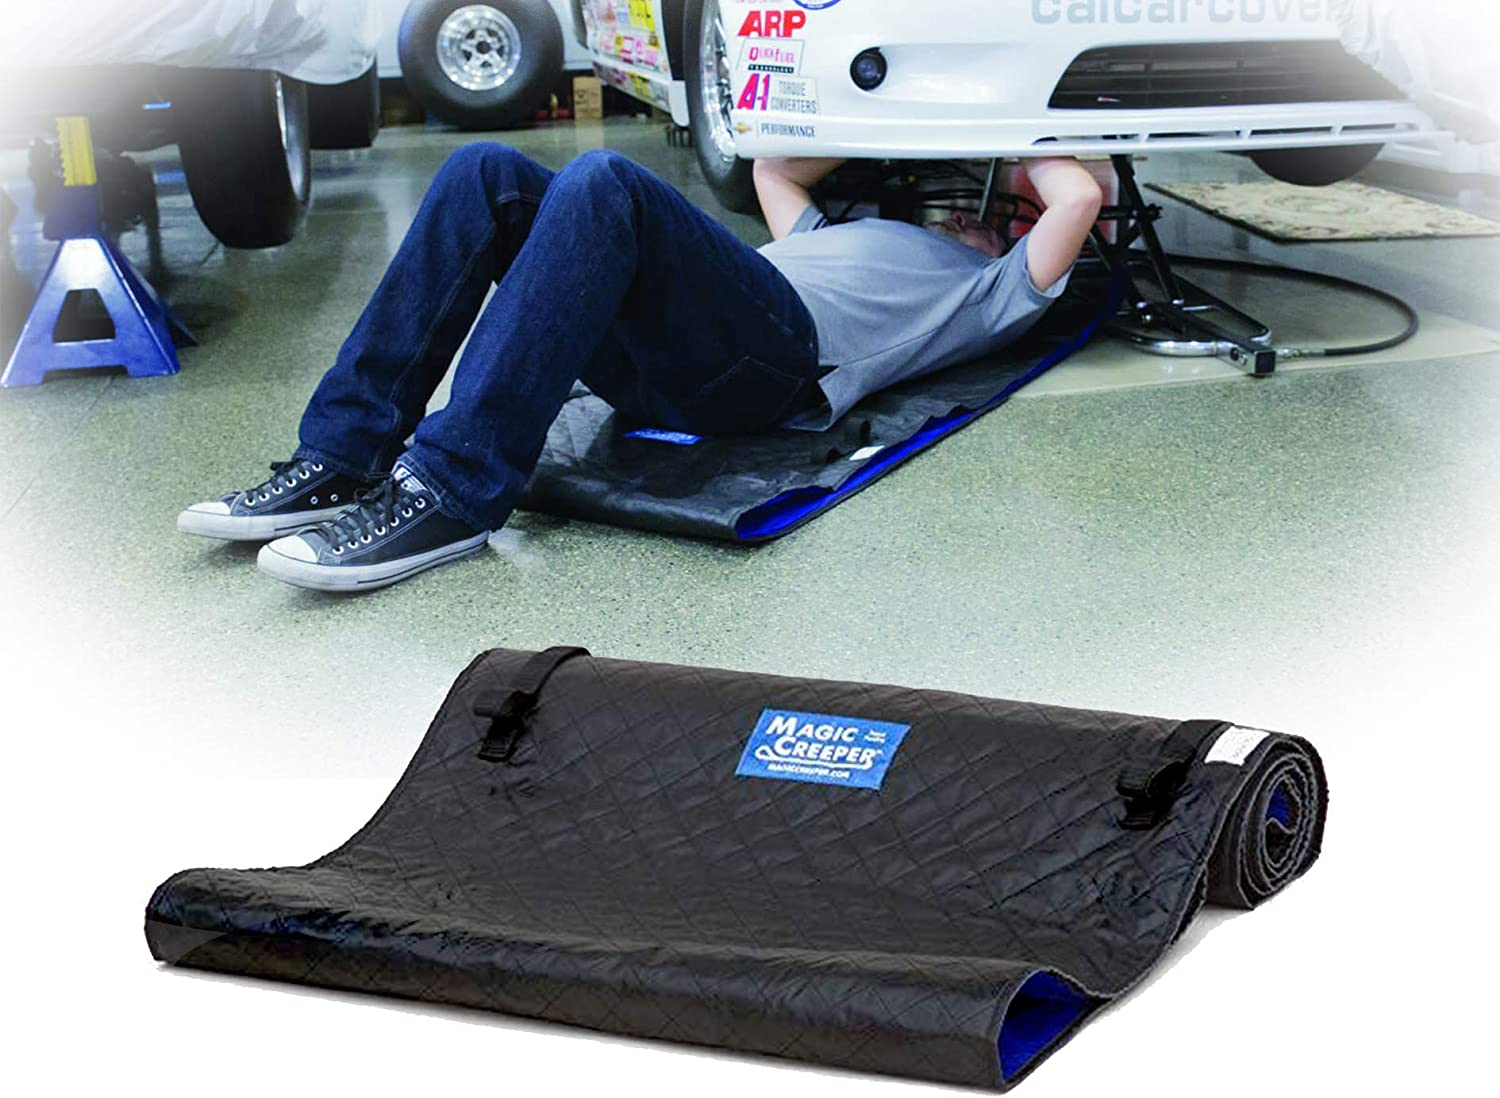 J/&C Foldable Automotive Creeper Mat for Garage Pad for Household Car Repair Help You Move Smoothly Under Cars Heavy Duty Handy Creepers 150 x 65cm 59 x 25 Inch